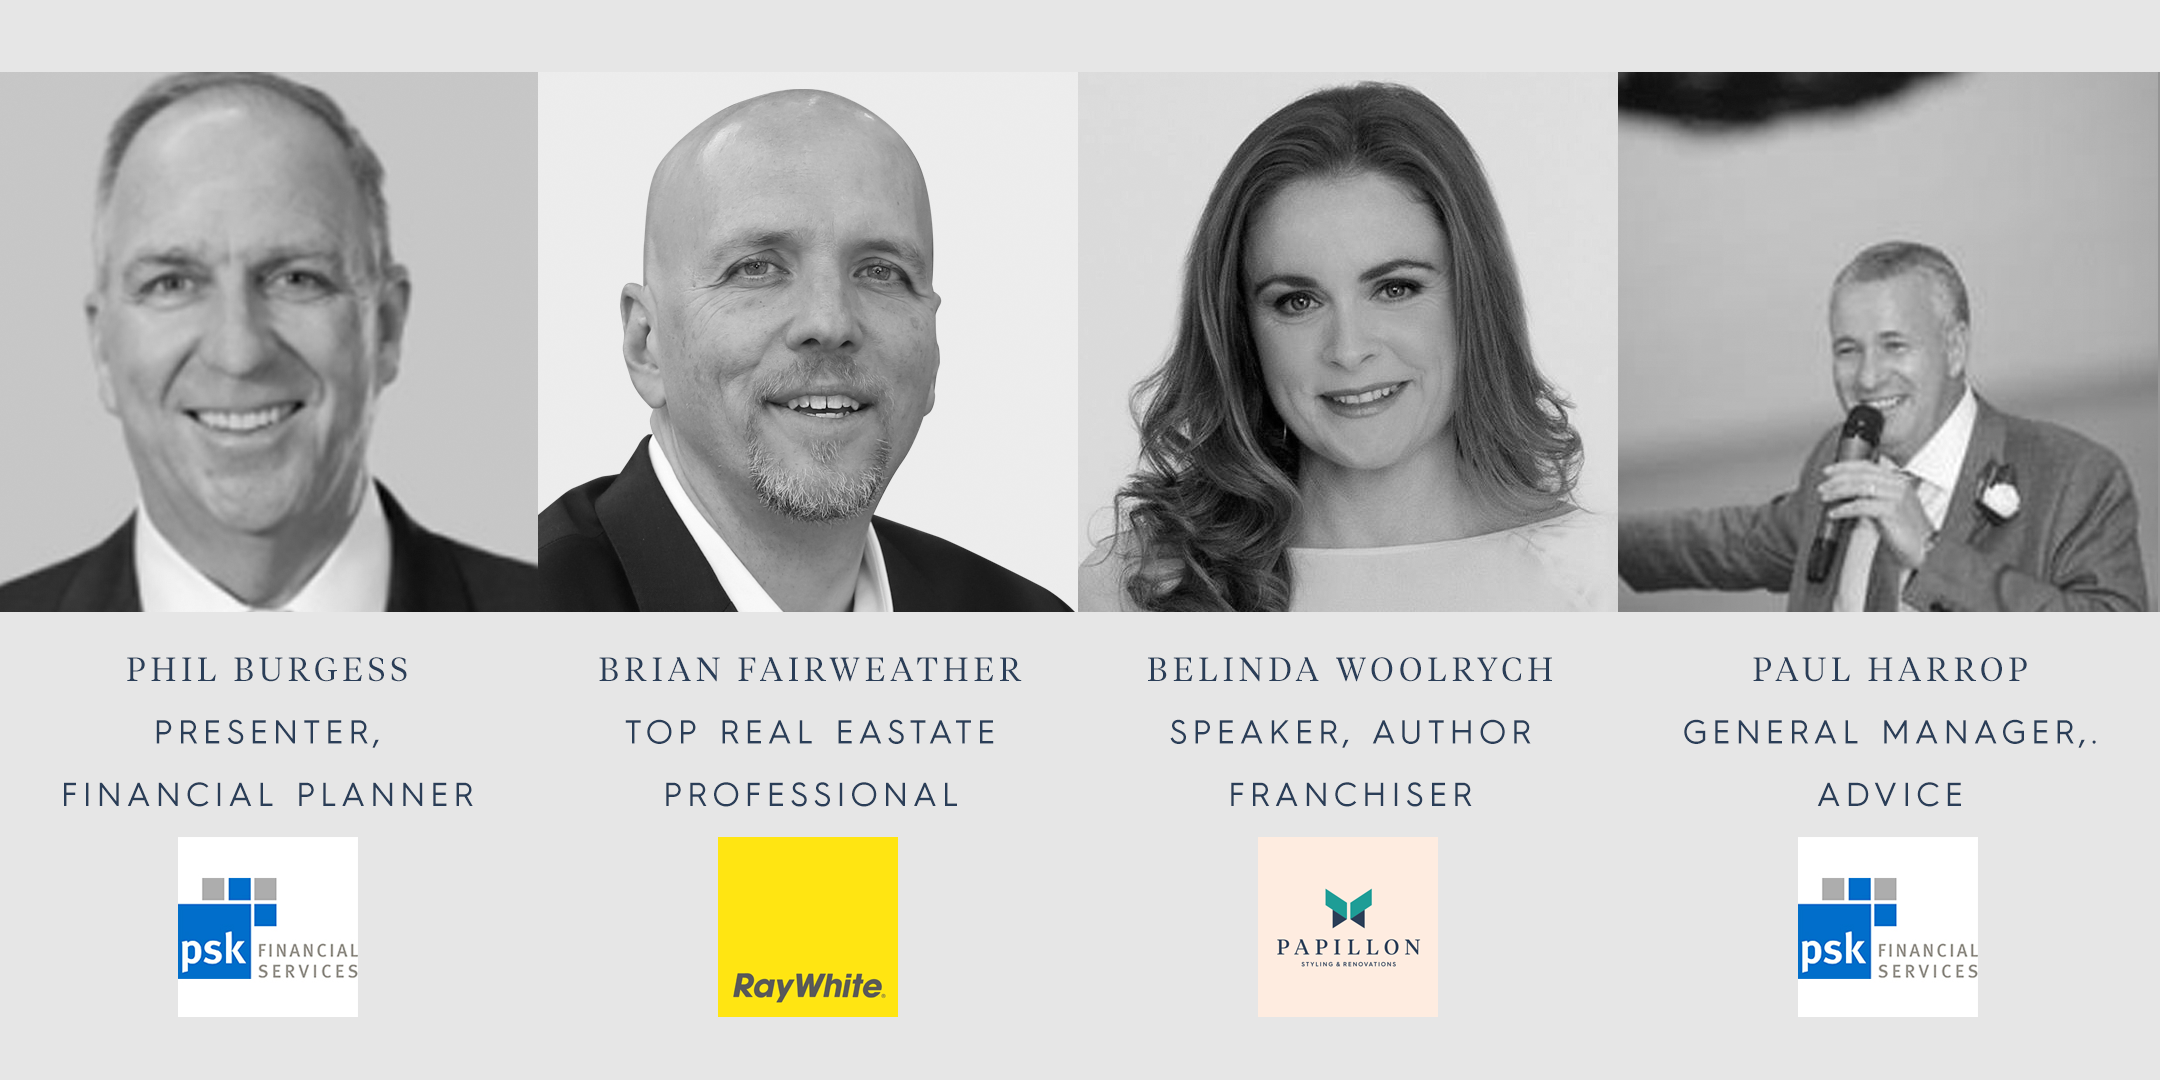 Speaker Lineup: Phil Burgess, Brian Fairweather, Belinda Woolrych, Paul Harrop